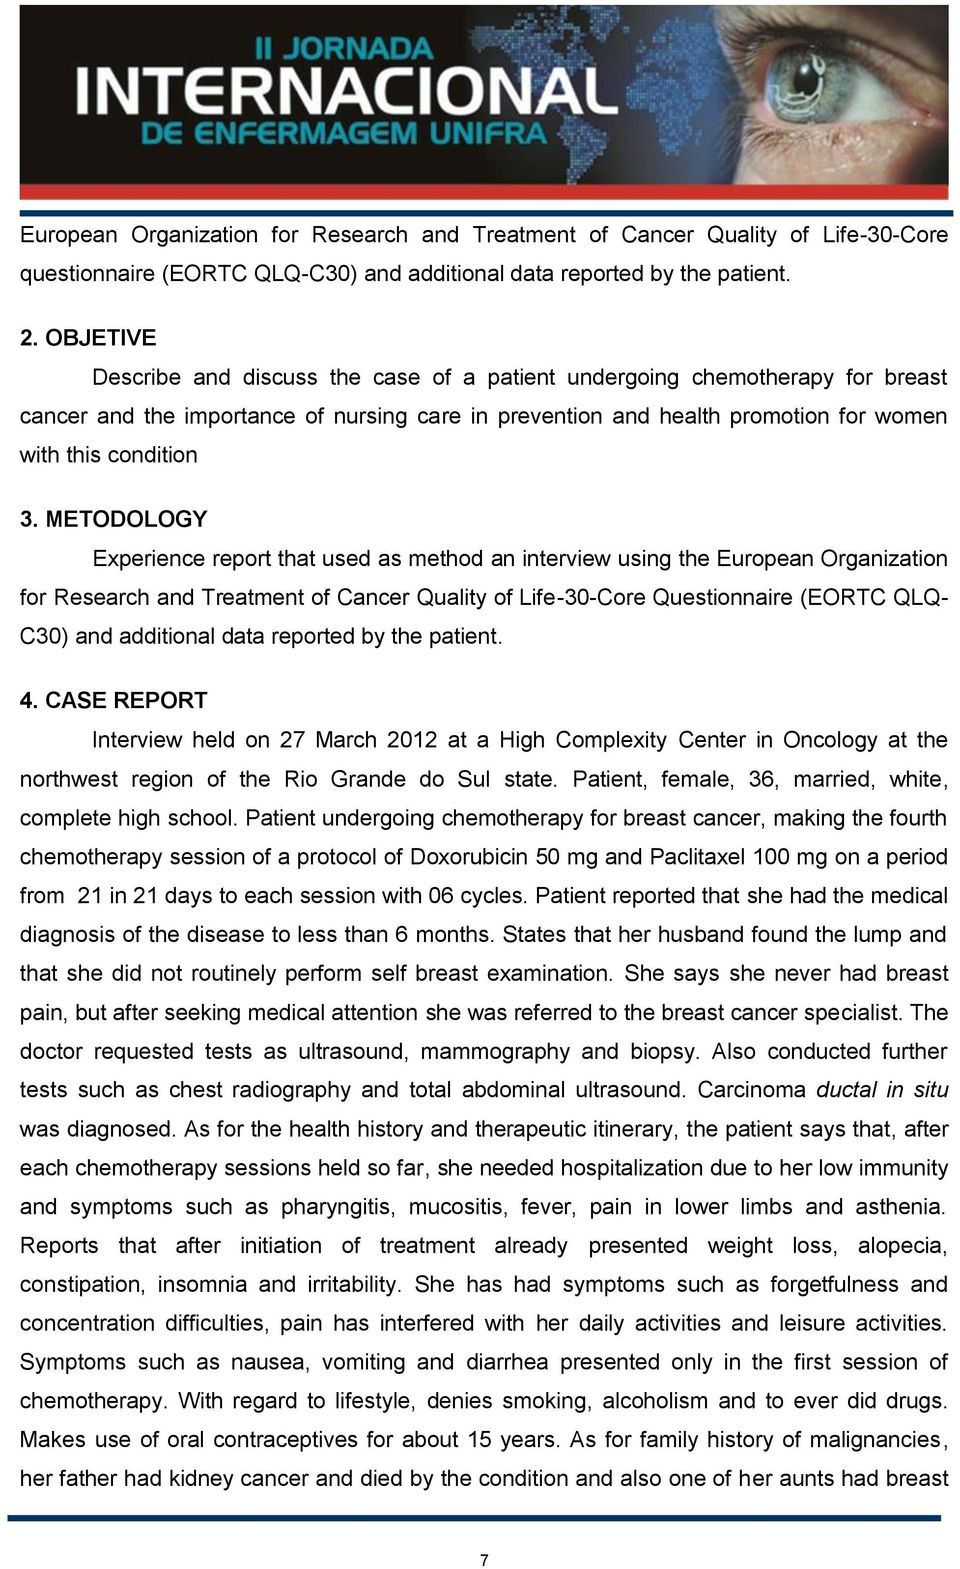 METODOLOGY Experience report that used as method an interview using the European Organization for Research and Treatment of Cancer Quality of Life-30-Core Questionnaire (EORTC QLQ- C30) and